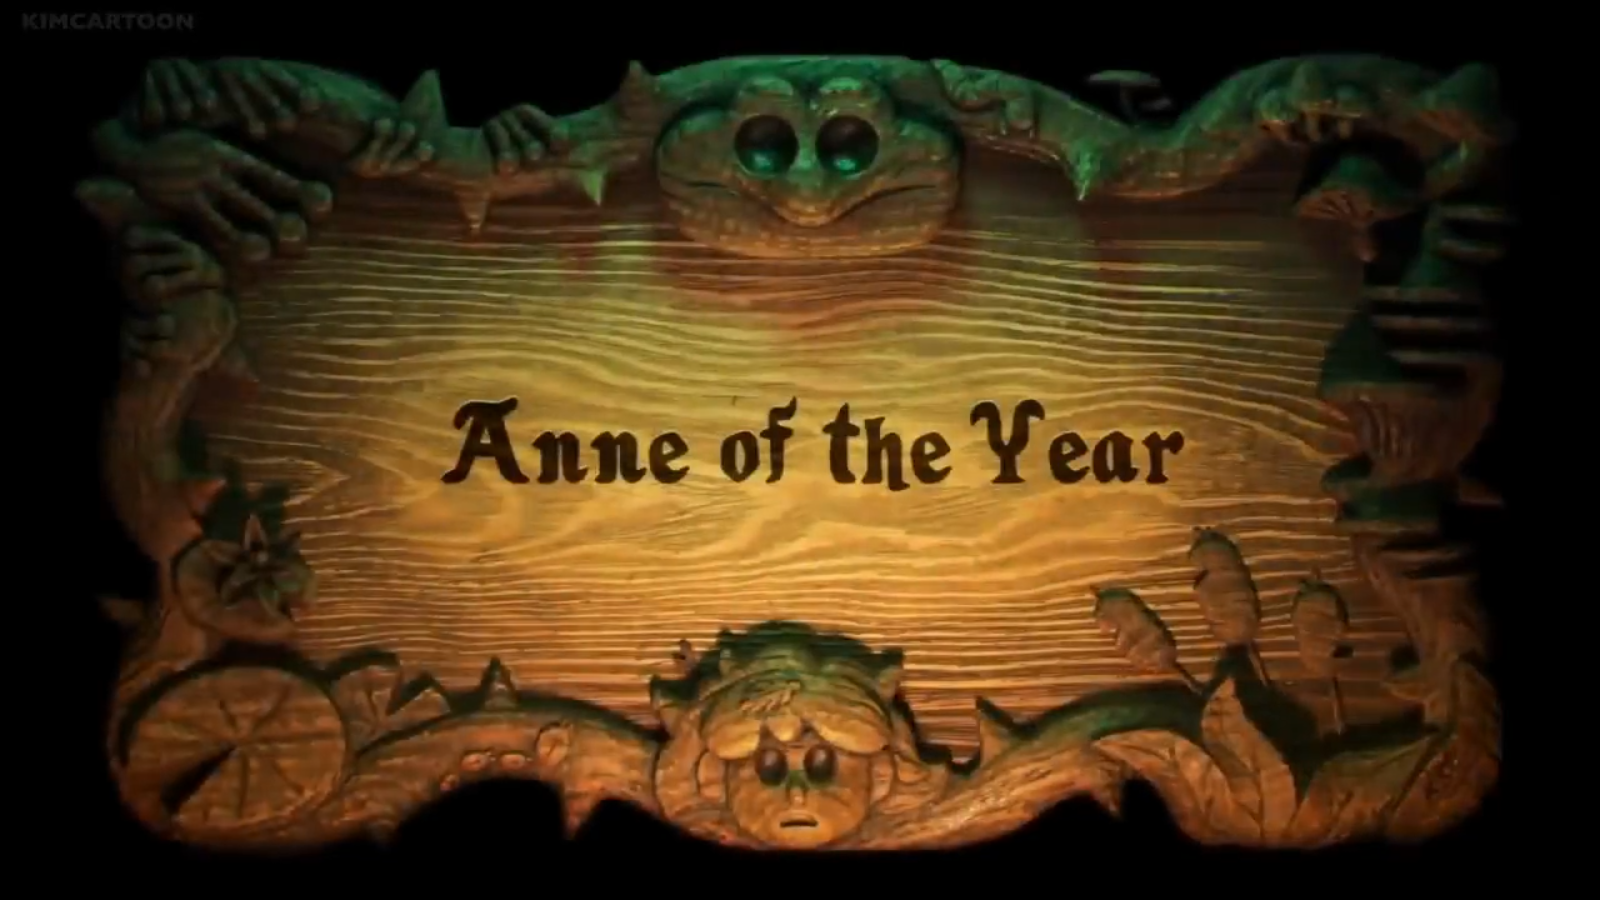 Anne of the Year